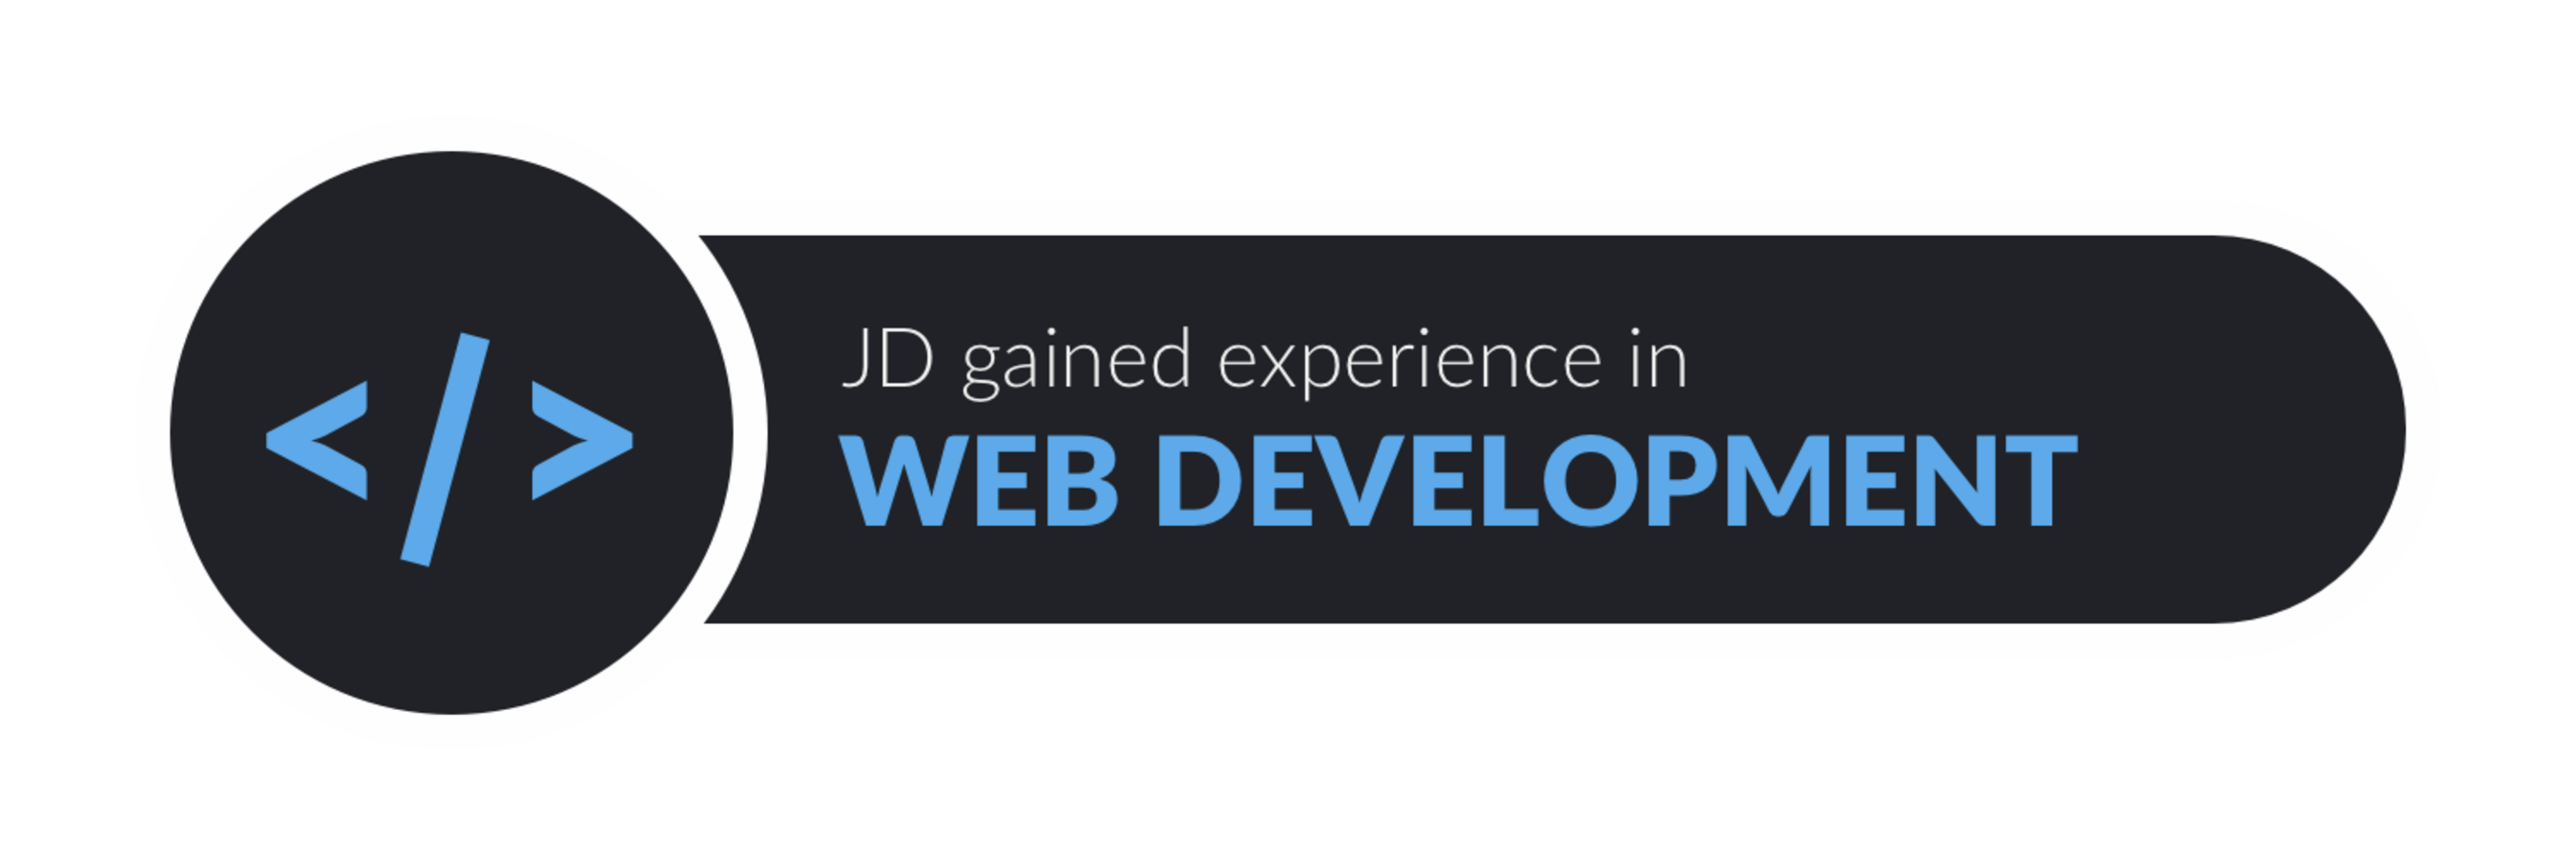 JD gained experience in web development